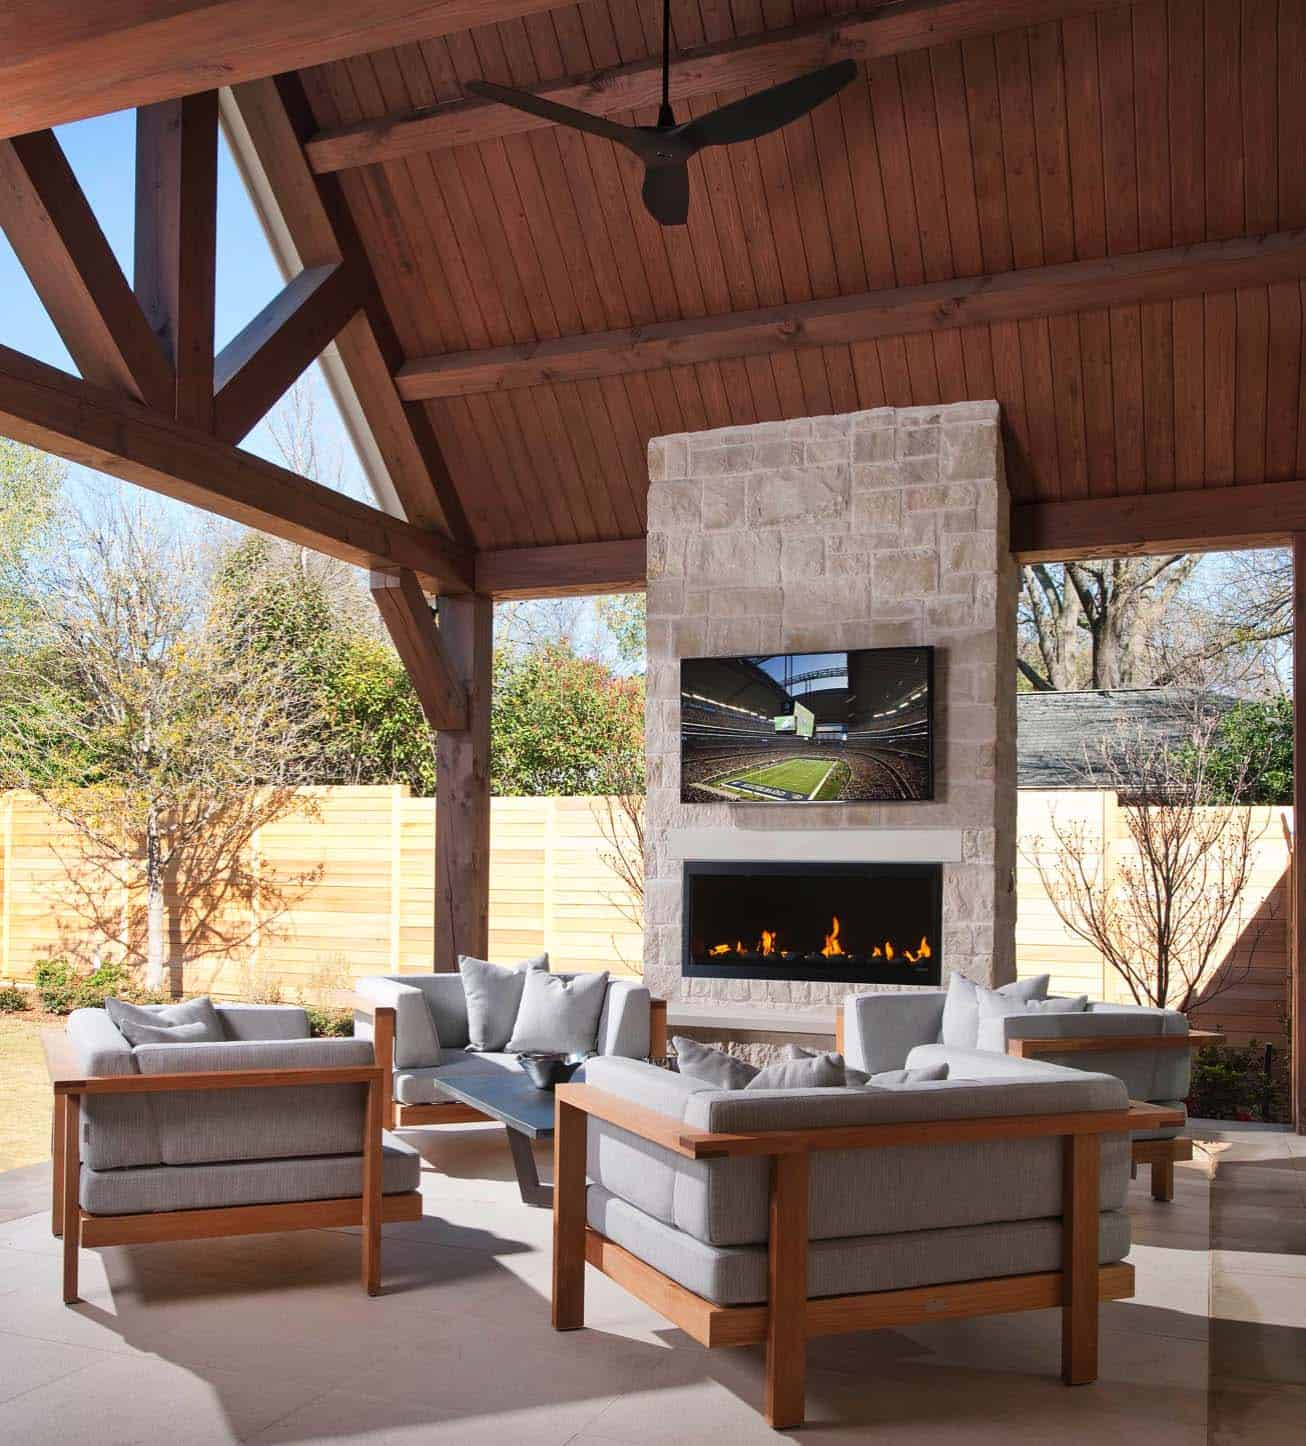 30+ Irresistible outdoor fireplace ideas that will leave ... on Outdoor Fireplaces Ideas id=64360